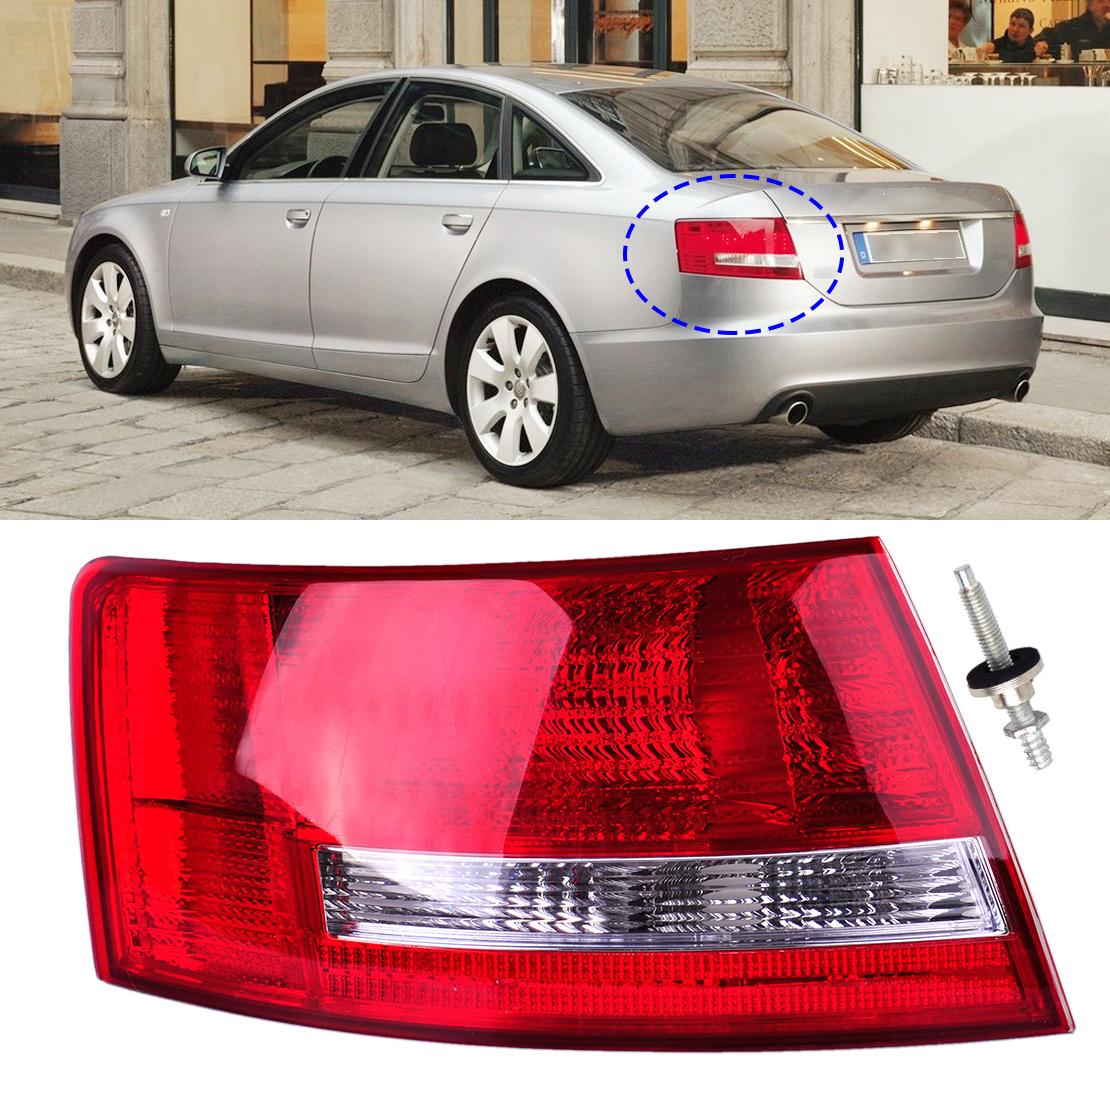 Left Tail Light Assembly Lamp Housing without Bulb fit for Audi A6 /A6 Quattro Sedan 2005 2006 2007 2008 4F5945095L 4F5945095D free shipping for skoda octavia sedan a5 2005 2006 2007 2008 right side rear lamp tail light